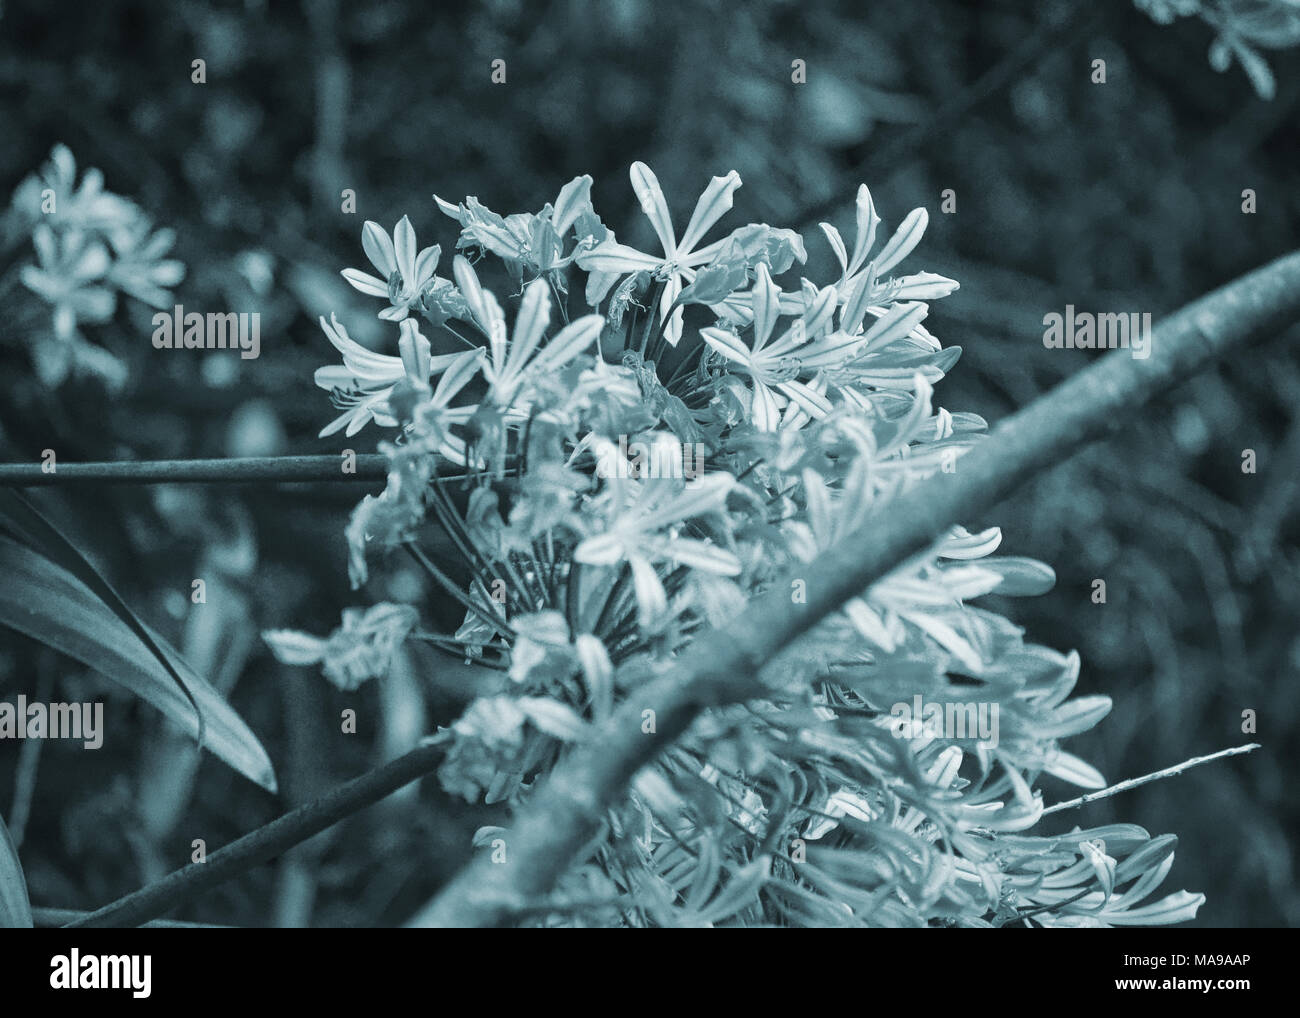 frigid bloom - Stock Image